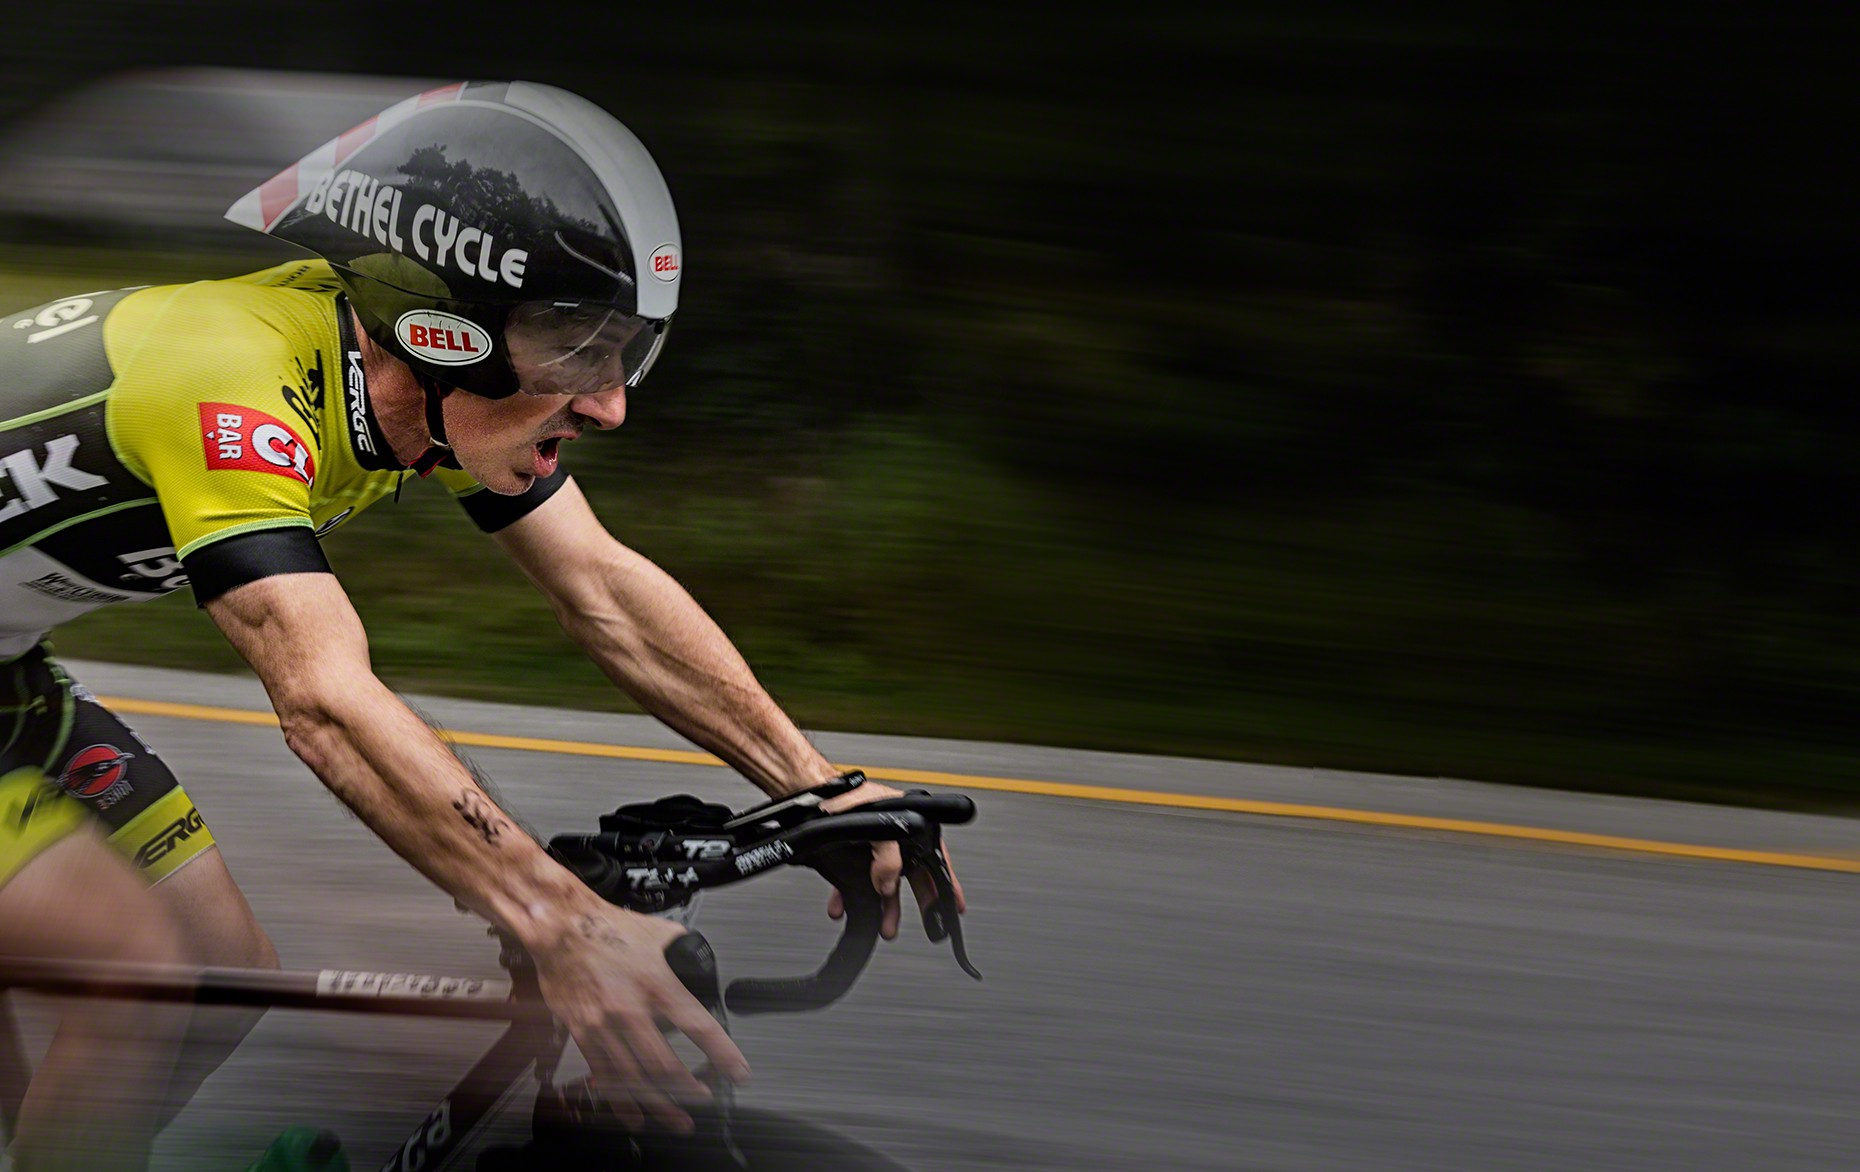 Image of Cyclists at Mt Greylock hill climb by photographer Ed Fritz